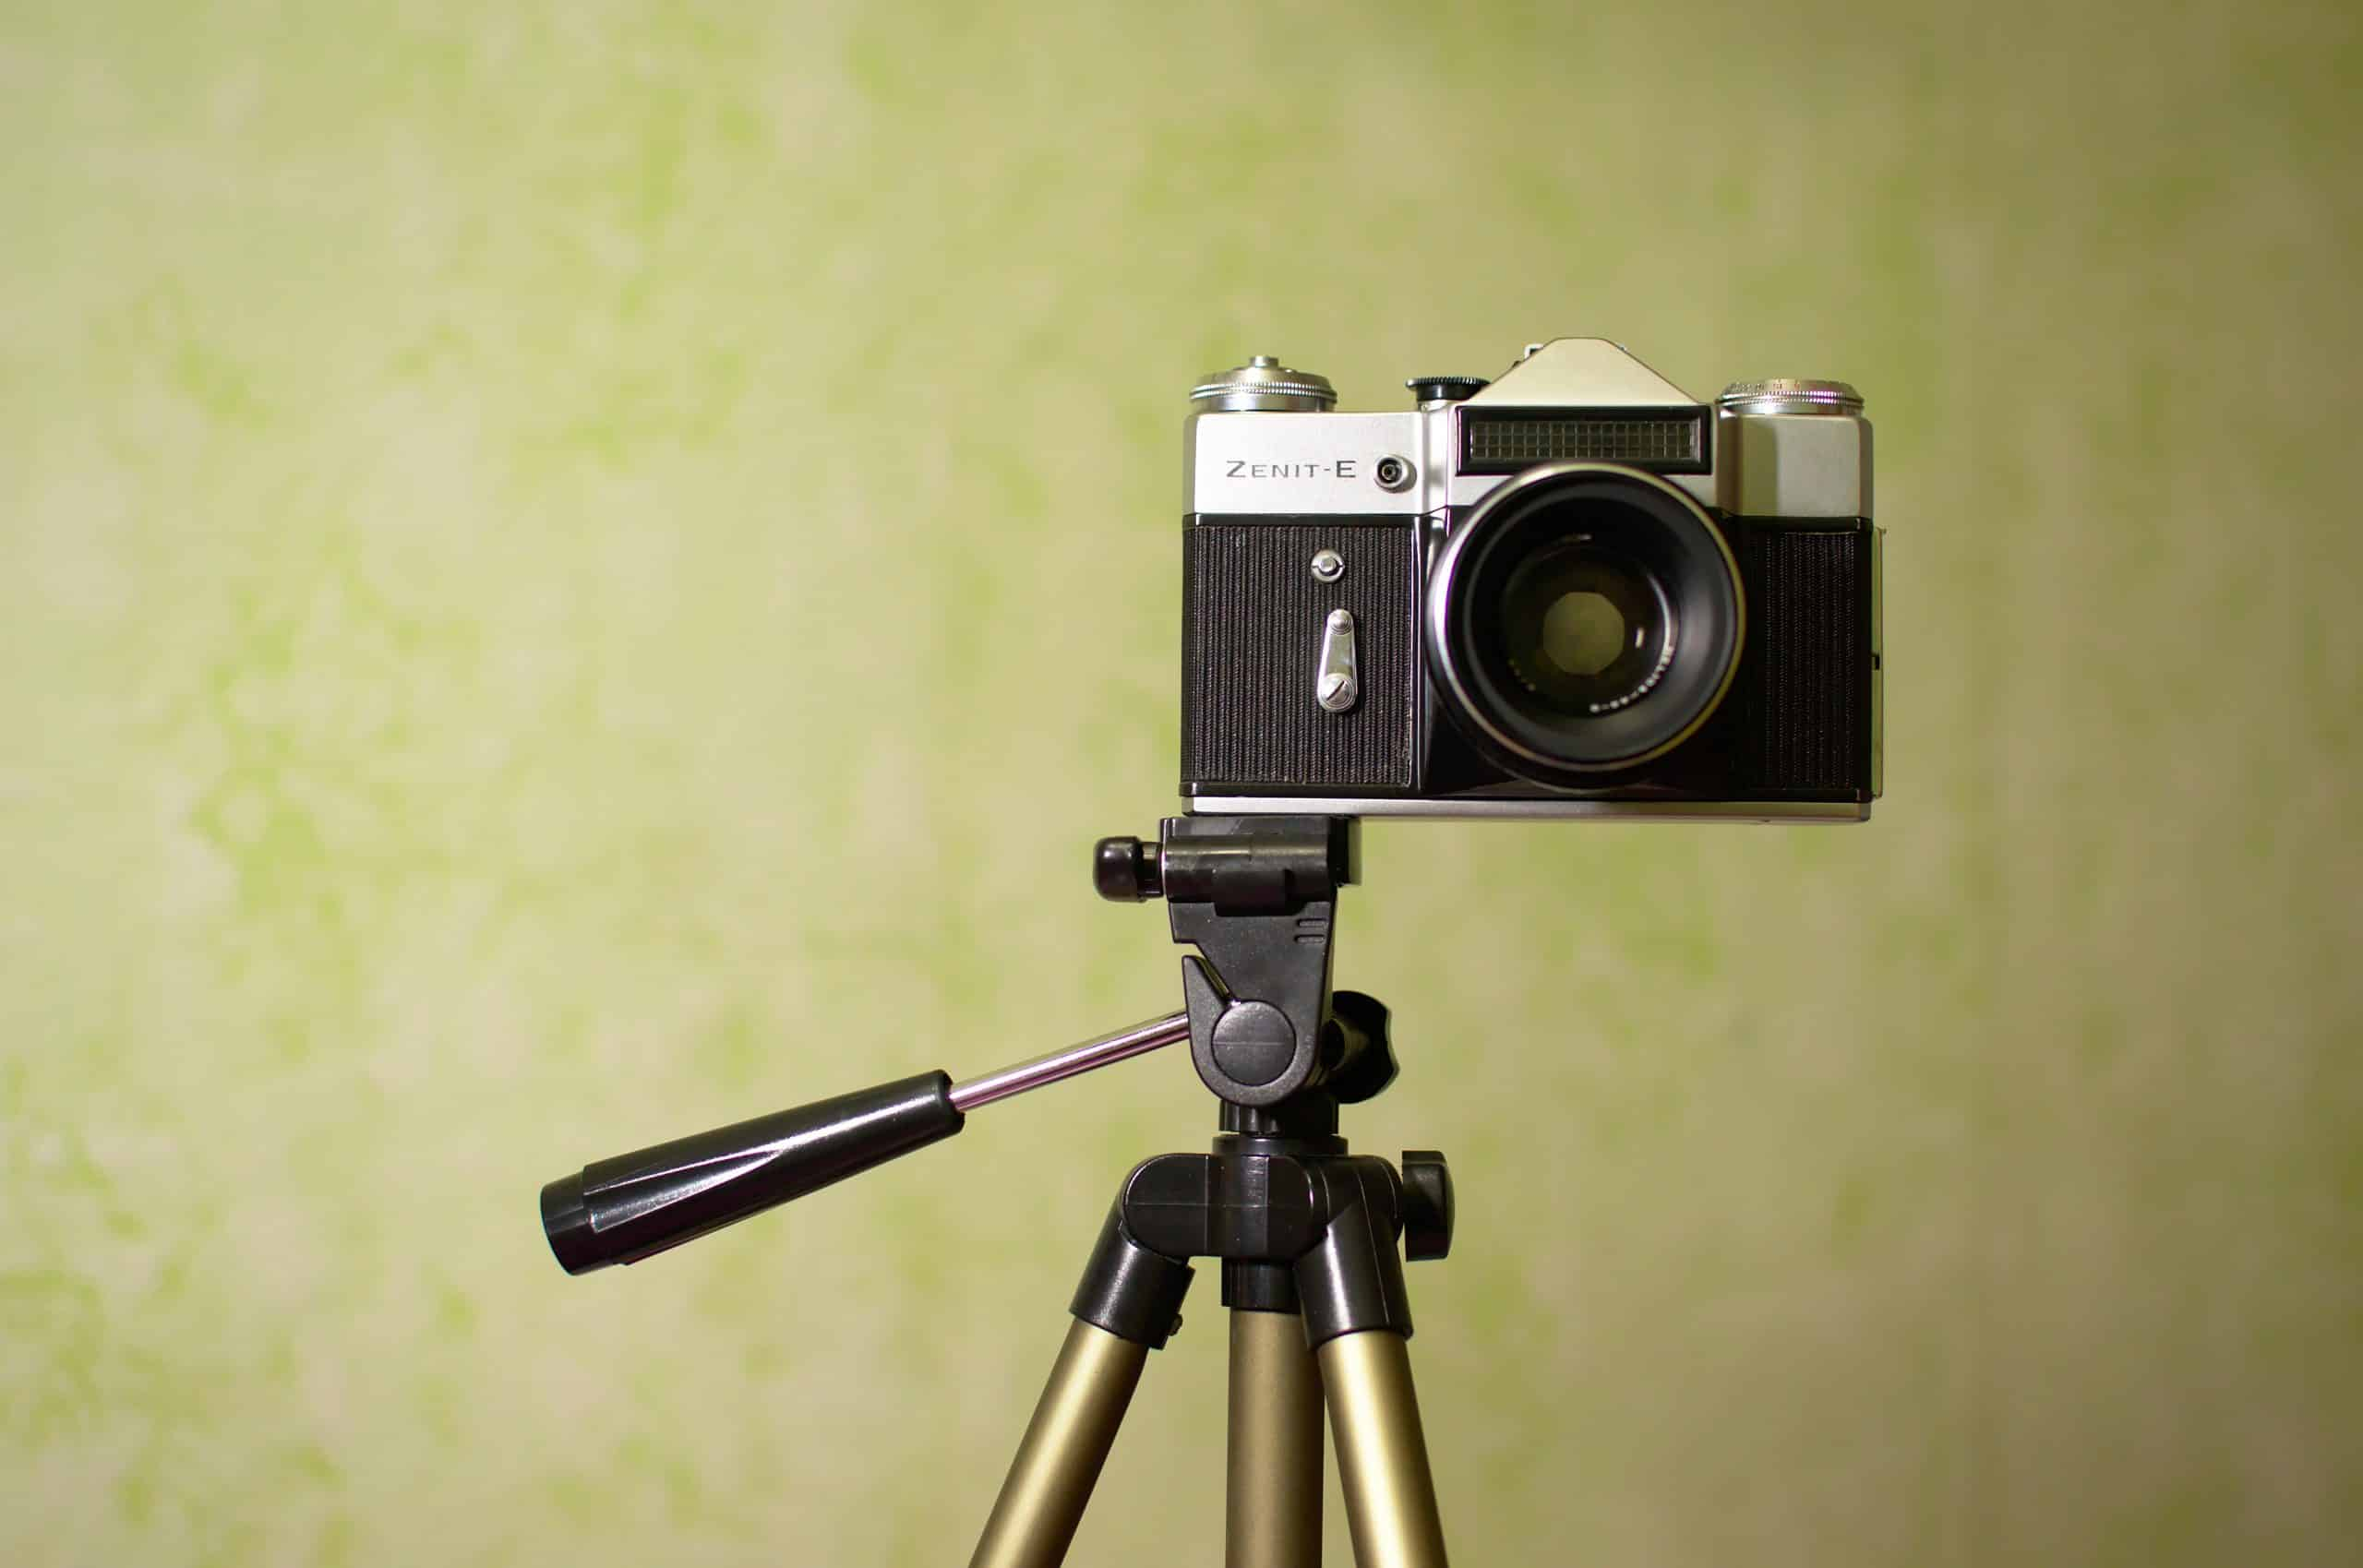 importance of good product photography using a tripod pic-up uk